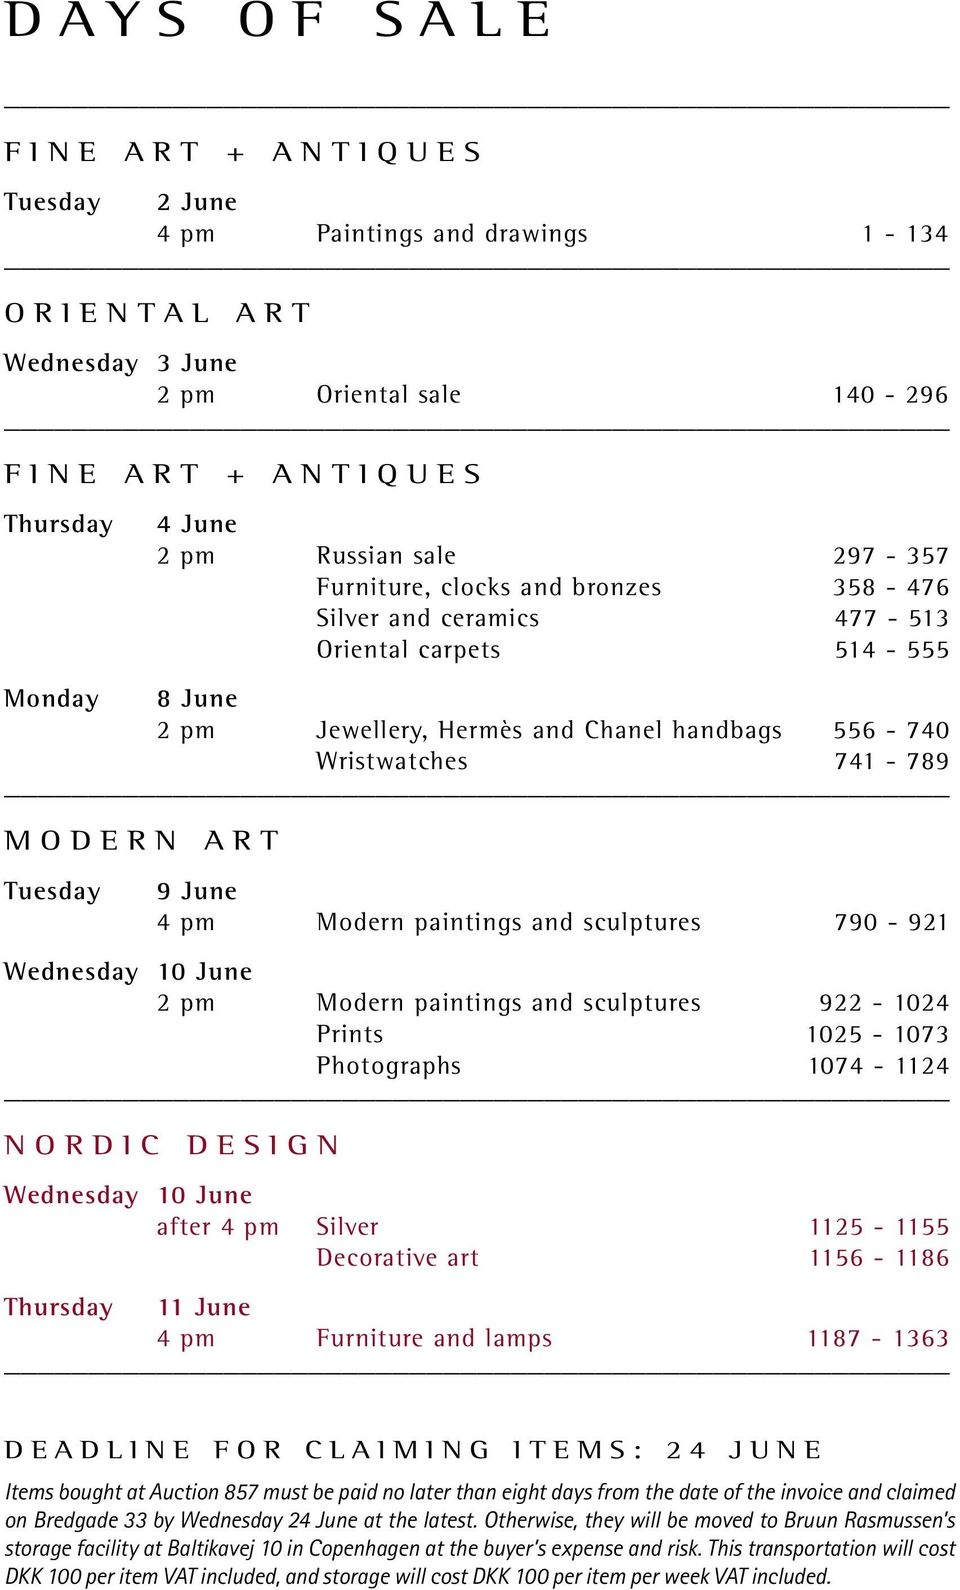 Tuesday 9 June 4 pm Modern paintings and sculptures 790-921 Wednesday 10 June 2 pm Modern paintings and sculptures 922-1024 Prints 1025-1073 Photographs 1074-1124 NORDIC DESIGN Wednesday 10 June